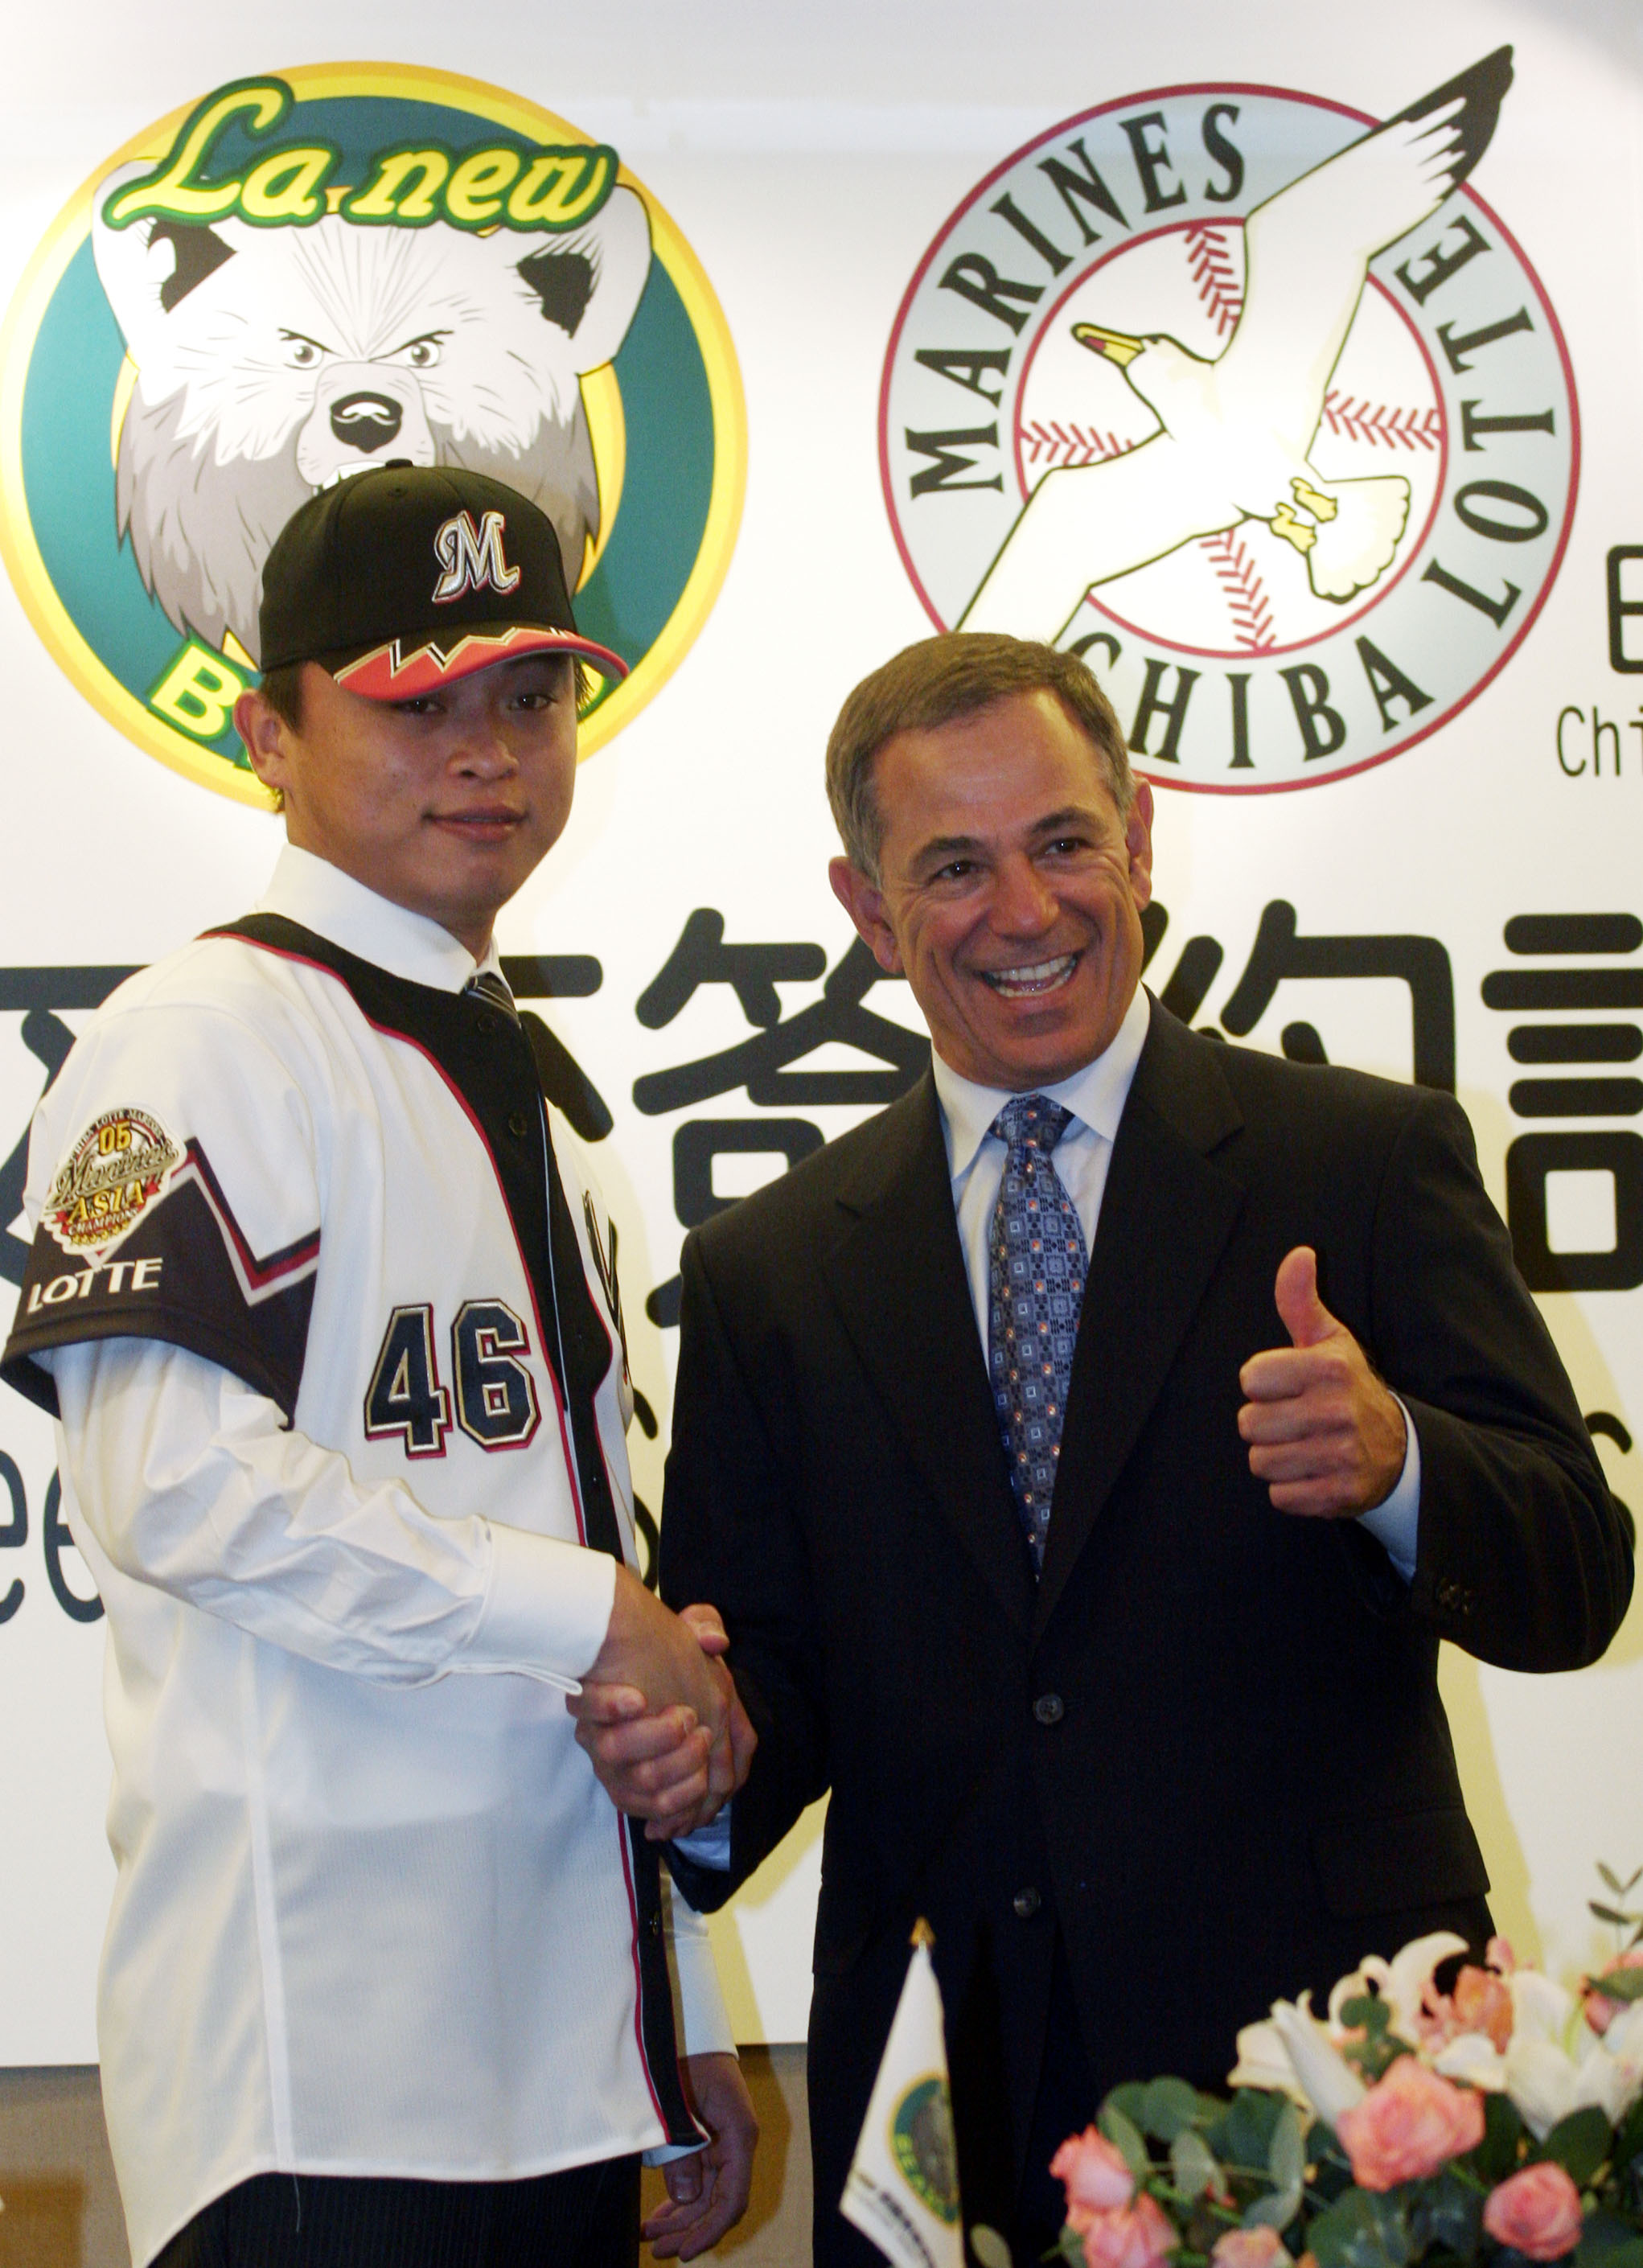 La New Bears, left, the lefty pitcher Wu Si-yo wears his new Japan's Chiba Lotte Marines jersey with Japan's Lotte Marines manager Bobby Valentine dur...